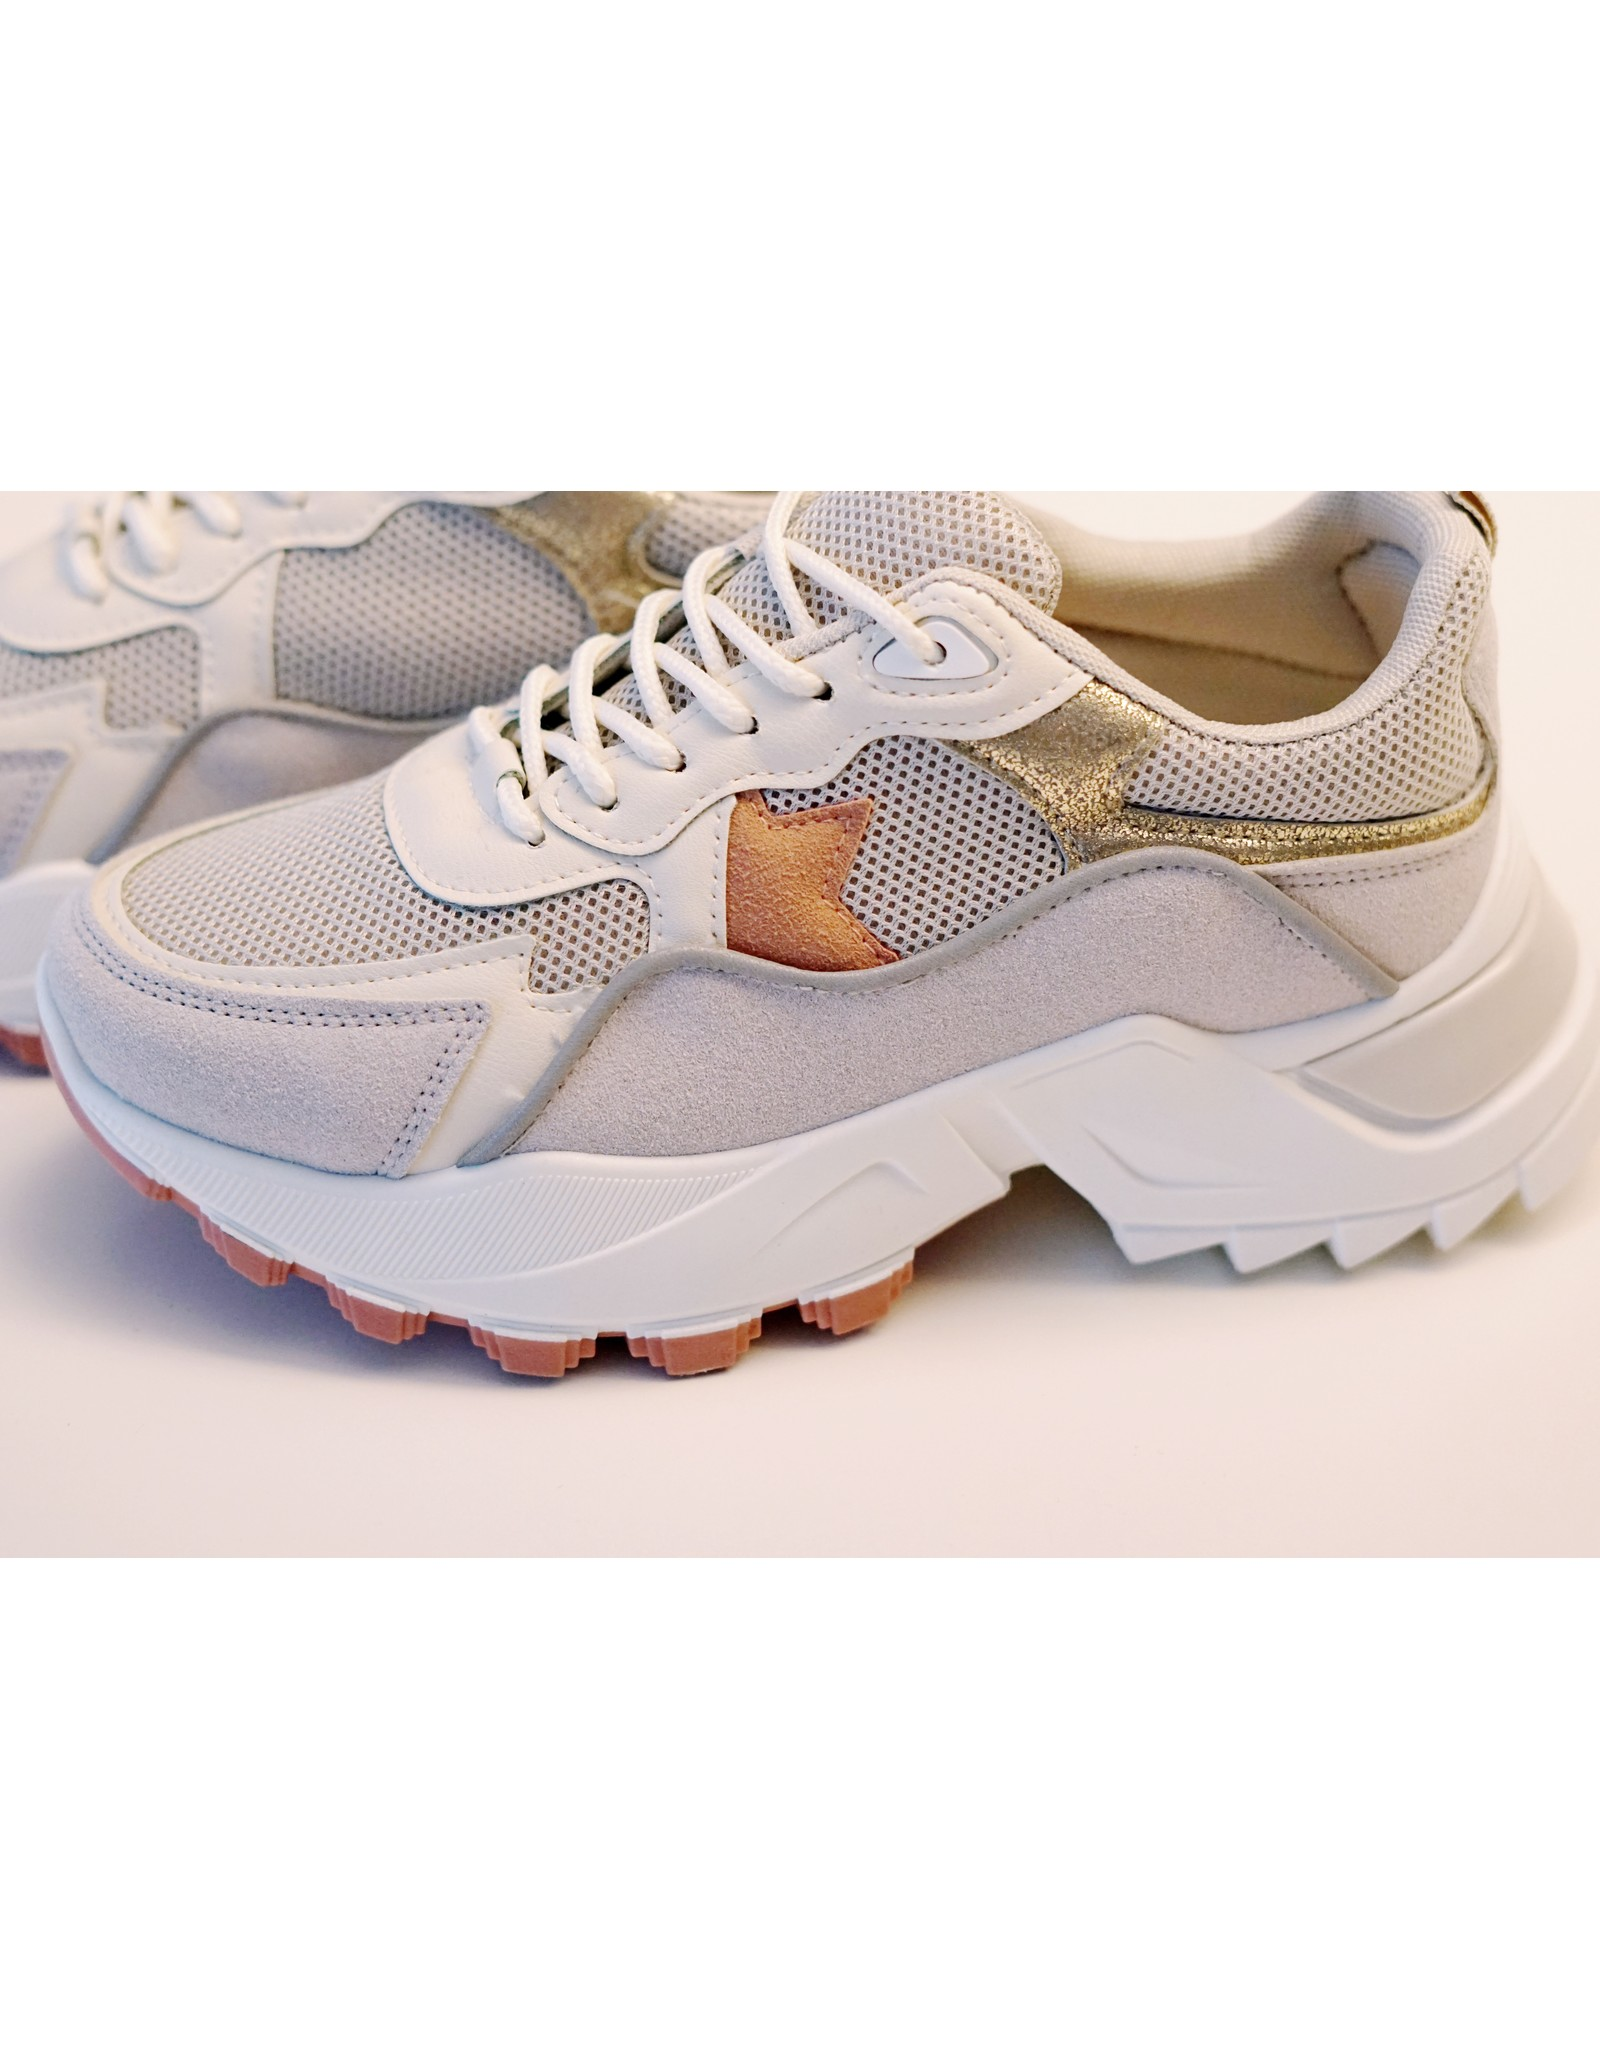 The chunky sneaker